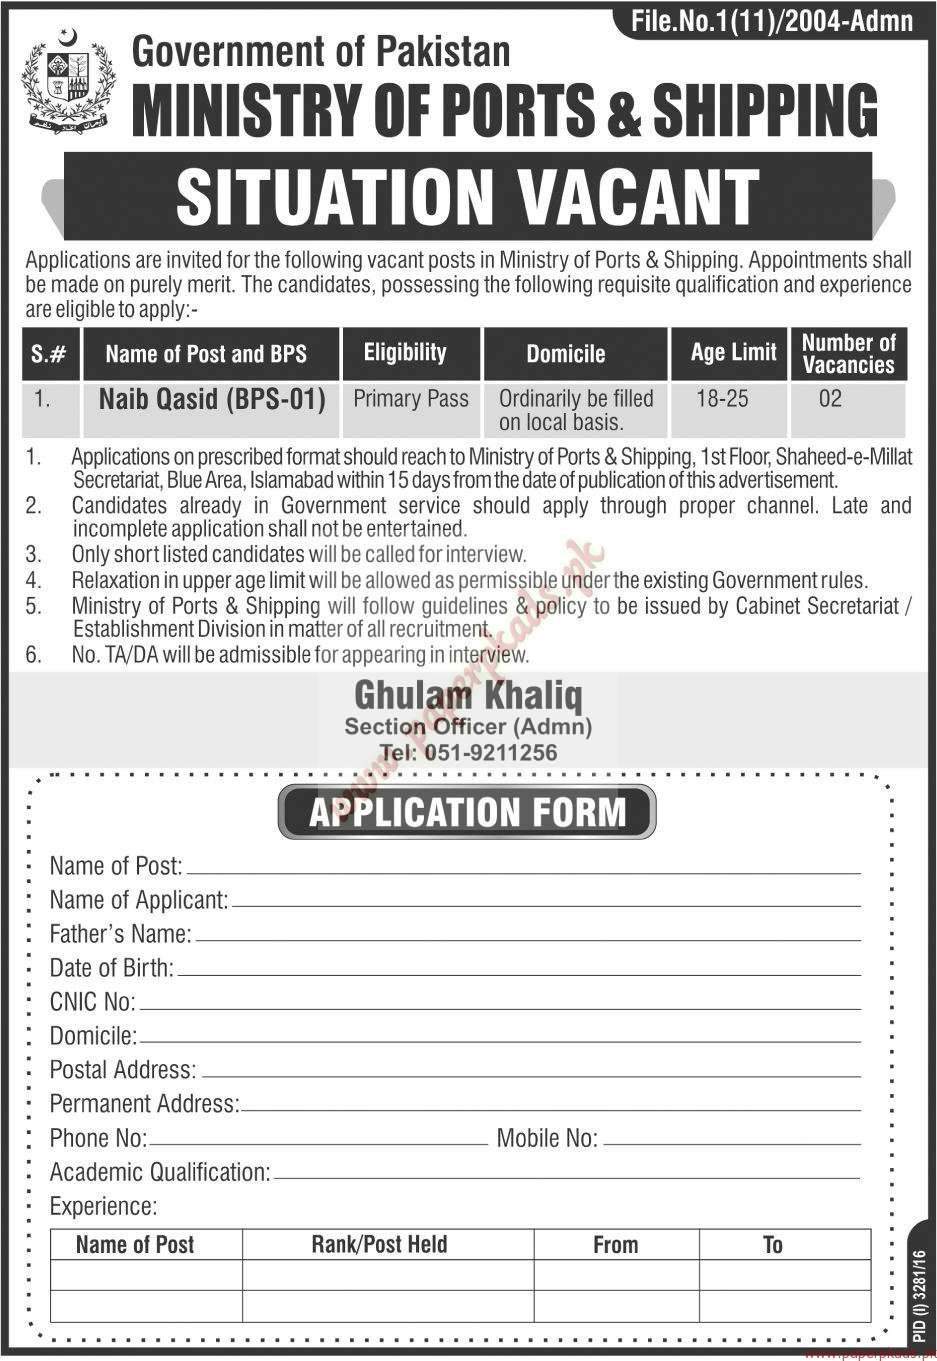 Government of Pakistan - Ministry of Ports & Shipping Jobs - The News Jobs ads 01 January 2017